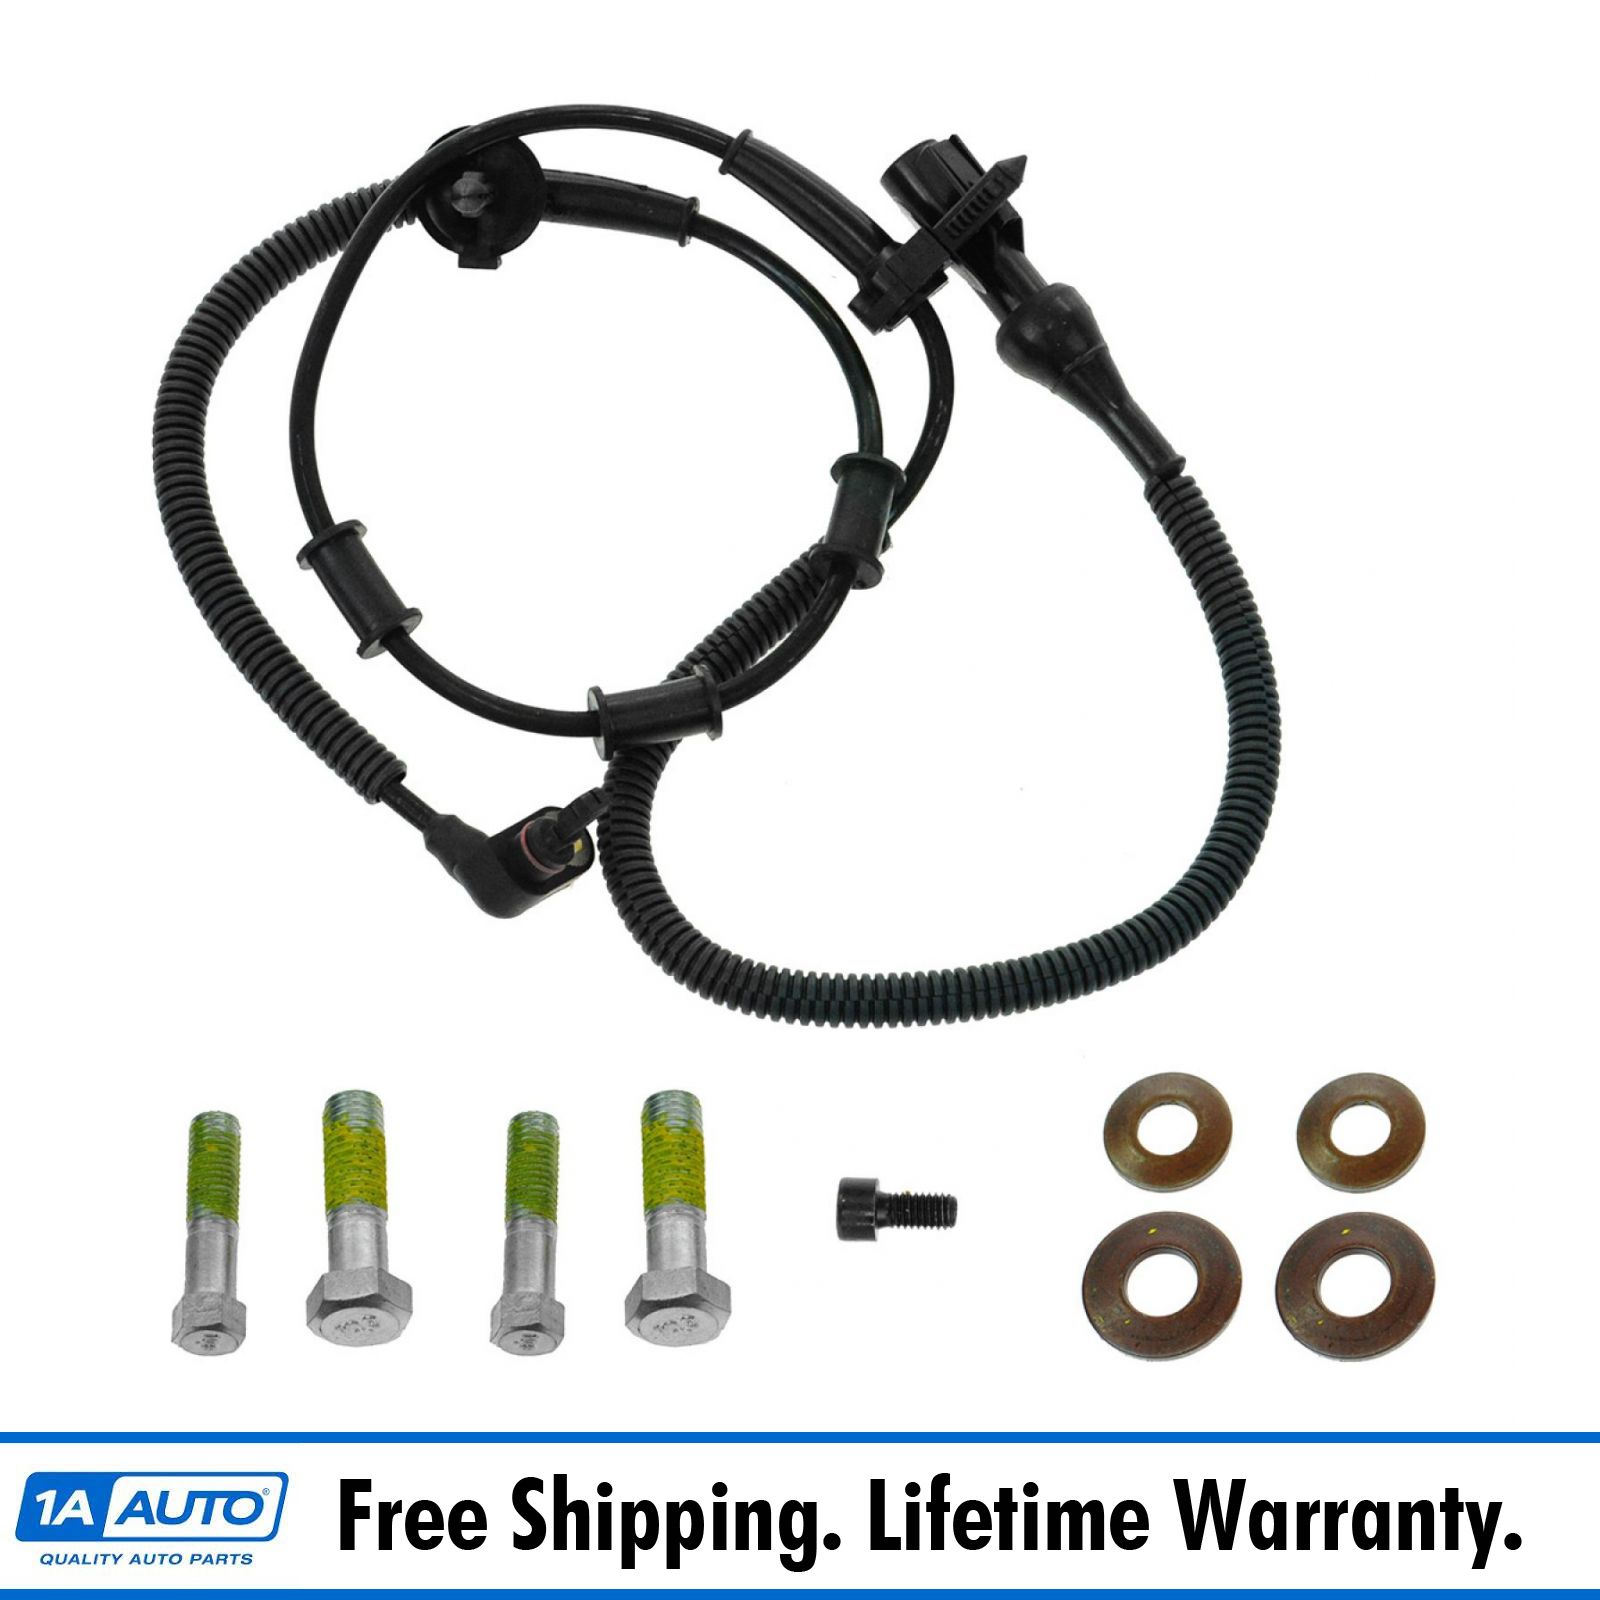 NEW ABS WHEEL SPEED SENSOR BRAKES FRONT RIGHT LEFT for 2003 2005 FORD LINCOLN